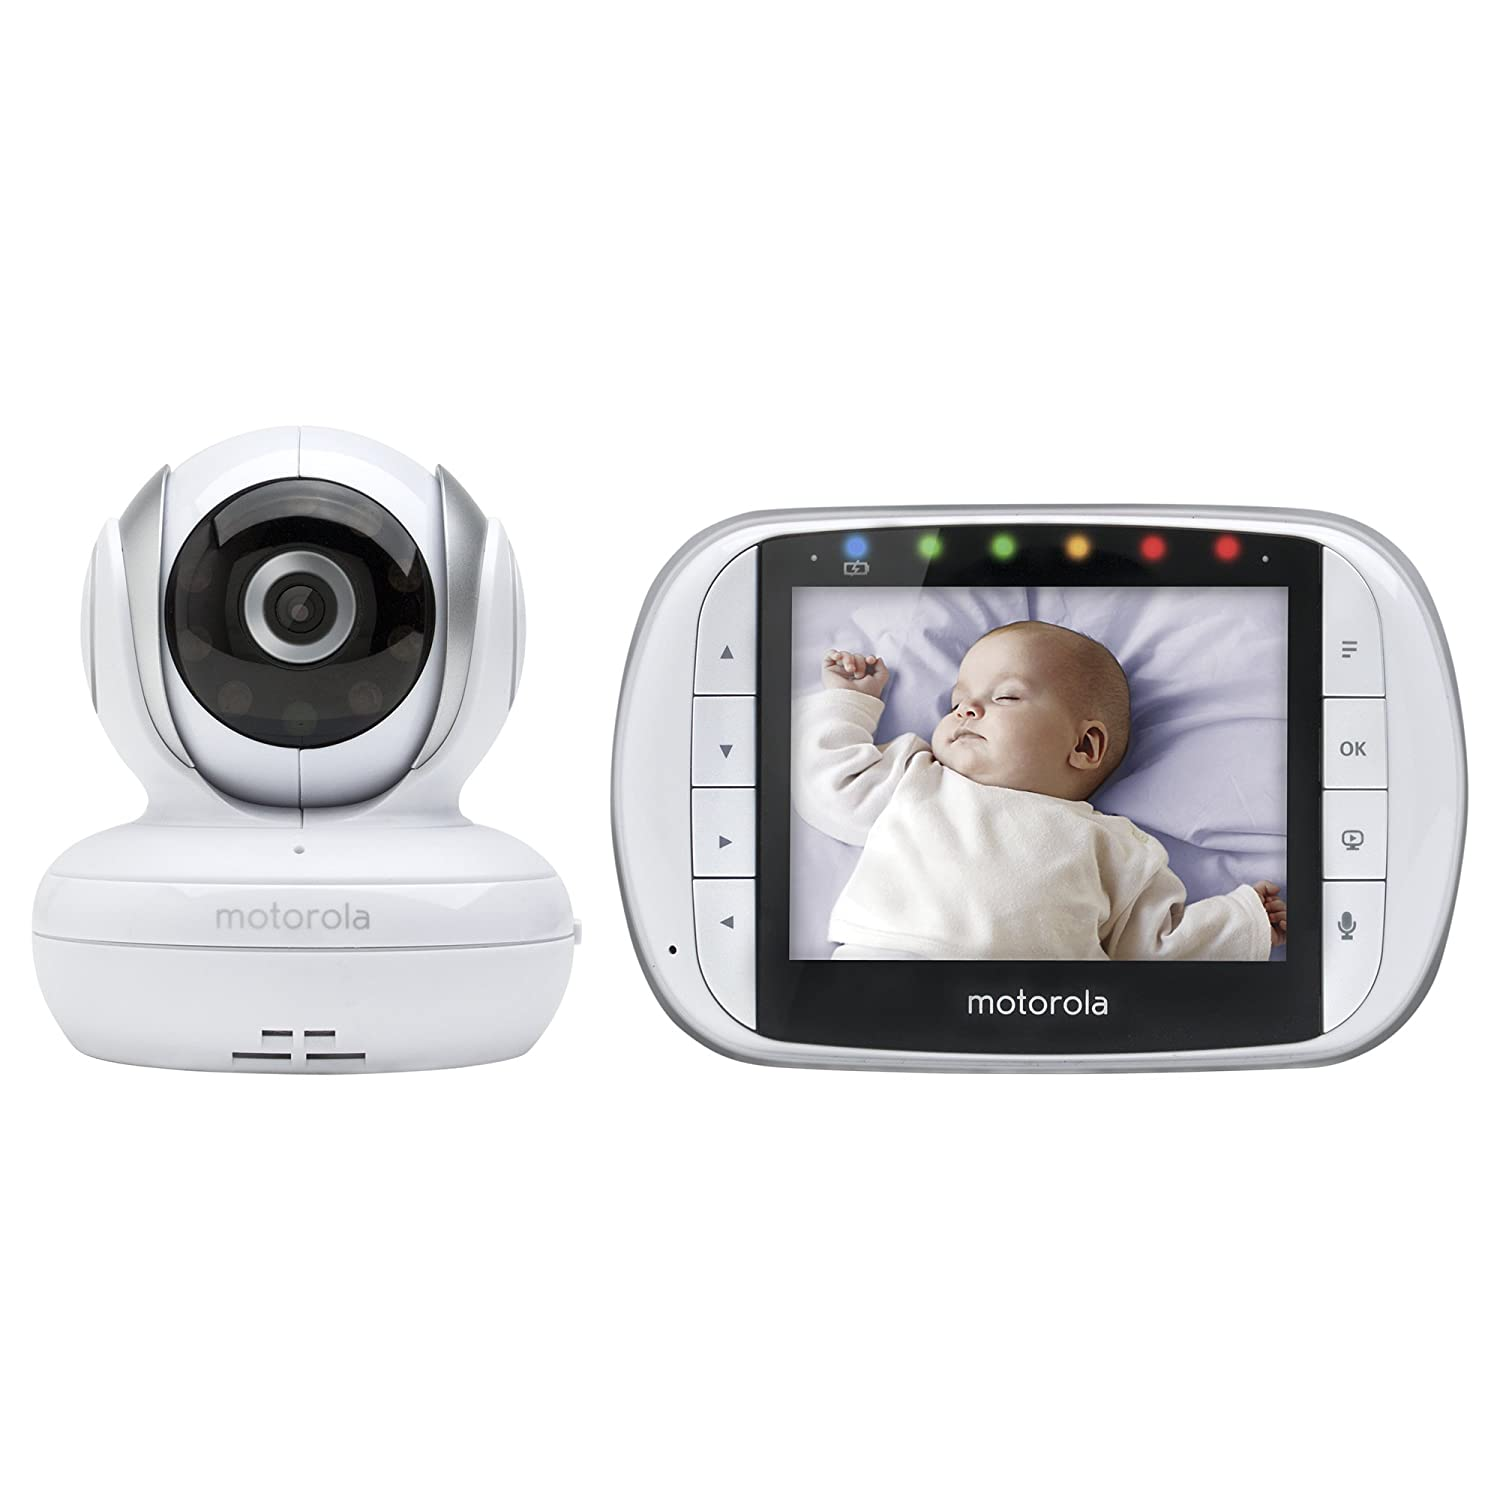 Motorola MBP33XL 3.5 Video Baby Monitor with Digital Zoom, Two-Way Audio and Room Temperature Display